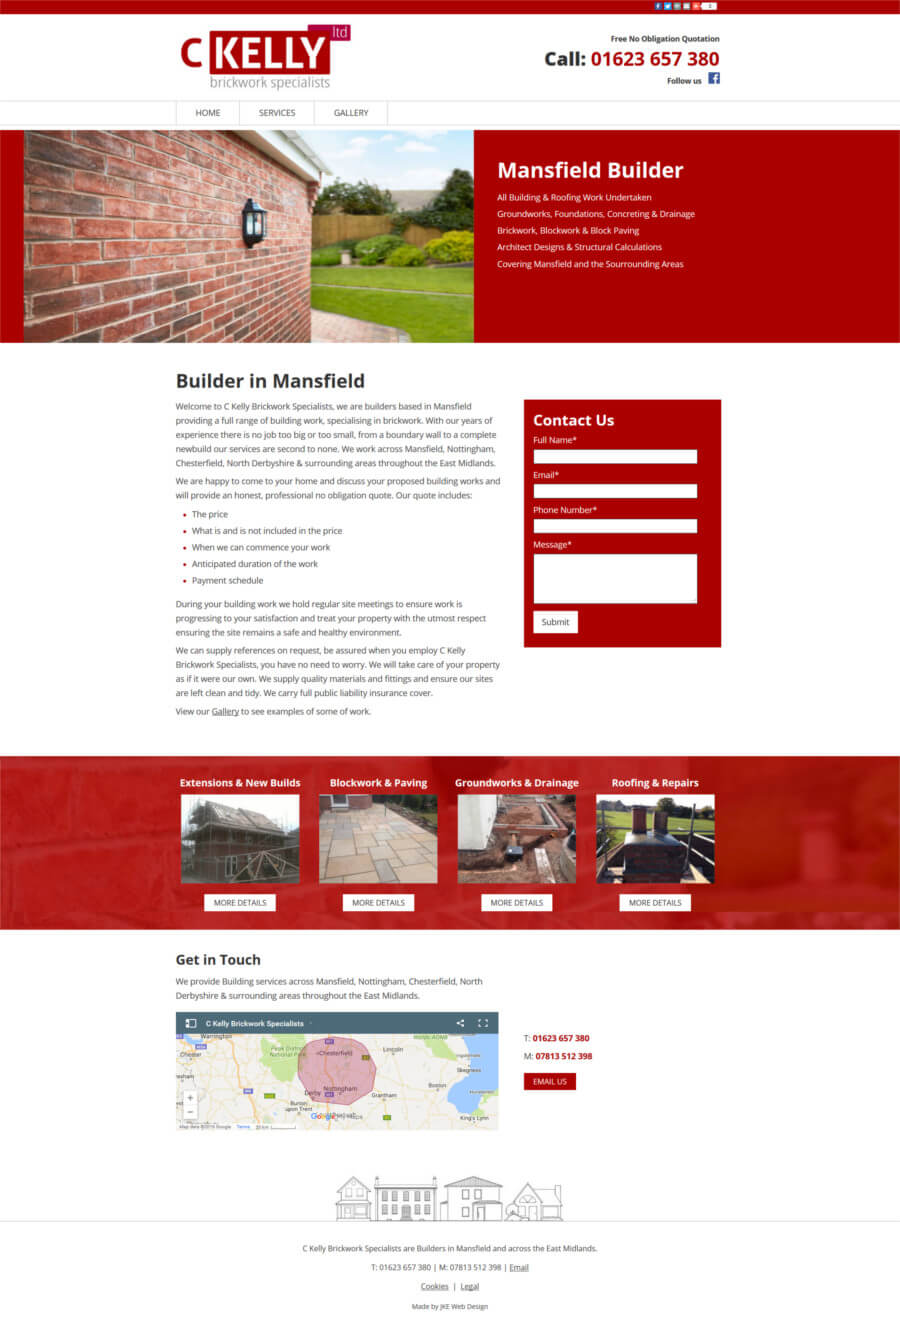 Chris Kelly Brickwork Specialists website